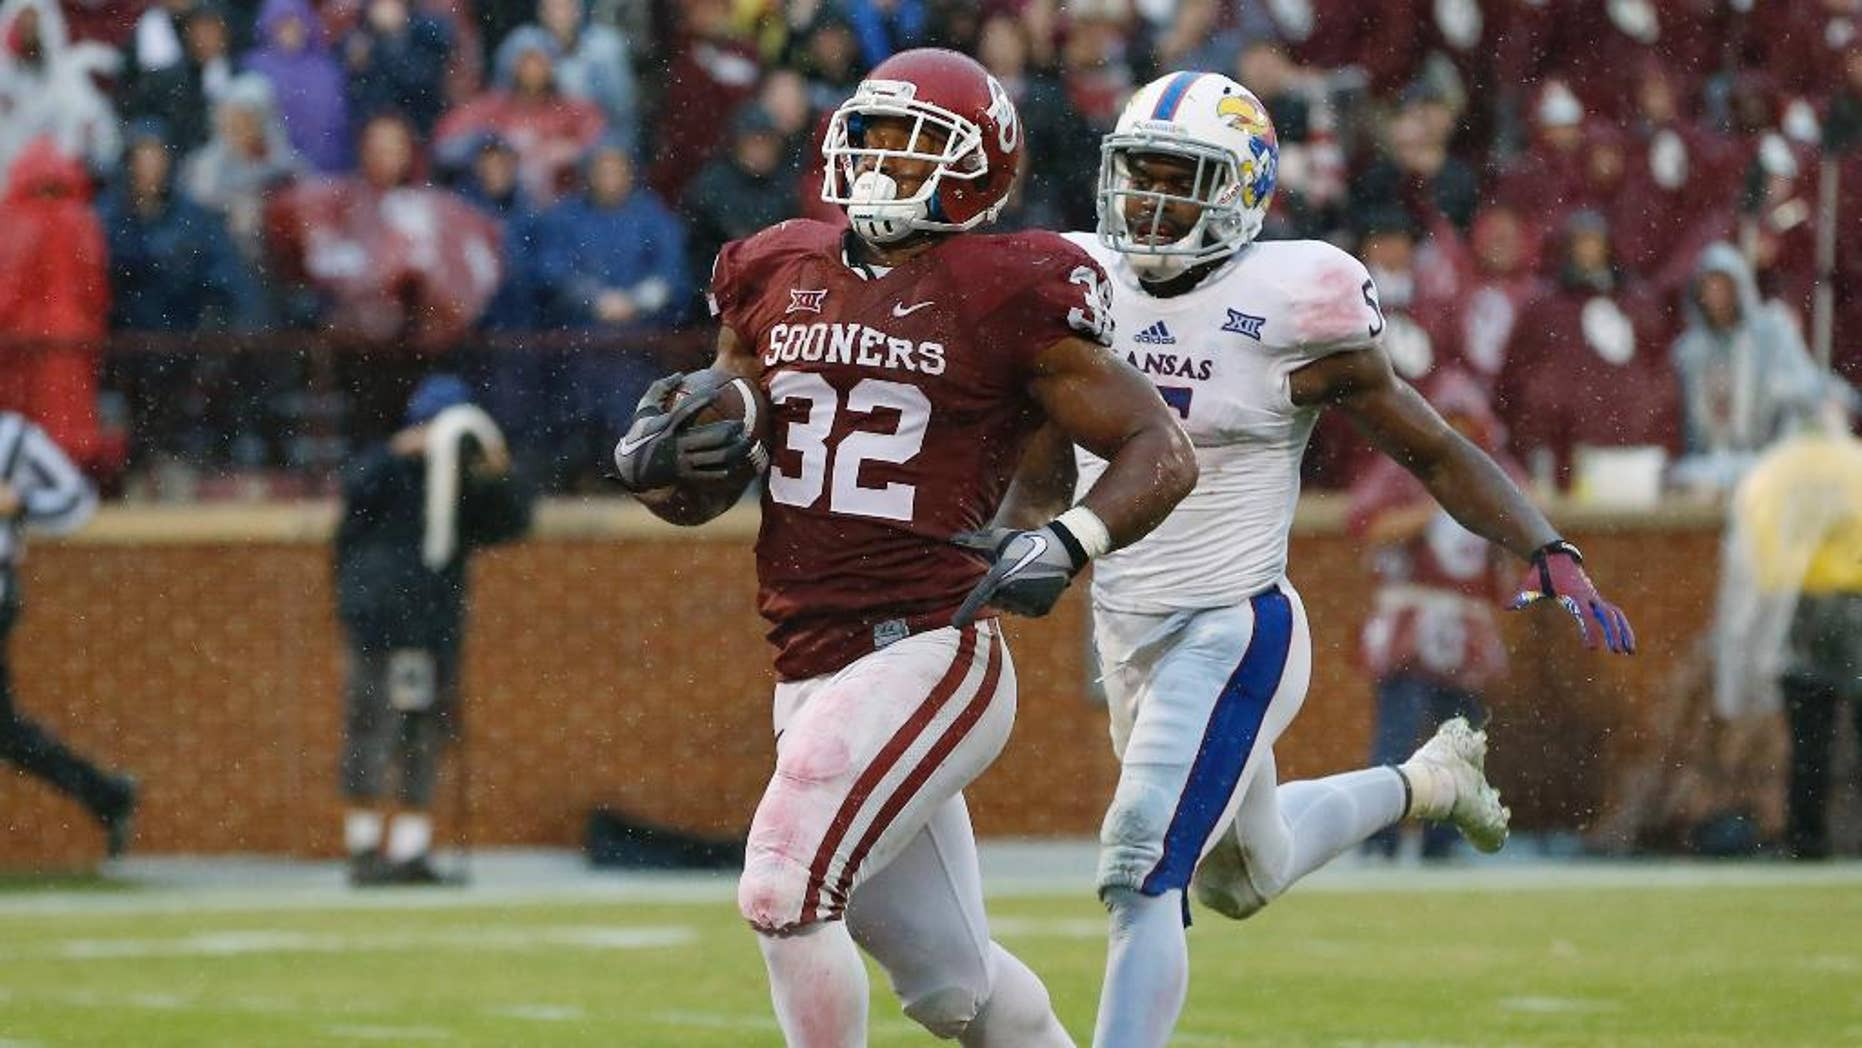 Oklahoma's Samaje Perine (32) runs into the end zone for a touchdown in front of Kansas's Isaiah Johnson (5) in the third quarter of an NCAA college football game in Norman, Okla., Saturday, Nov. 22, 2014. Oklahoma won 44-7. Perine broke the NCAA FBS single-game rushing record of 408 yards, set last week by Wisconsin's Melvin Gordon, with 427 yards. (AP Photo/Sue Ogrocki)